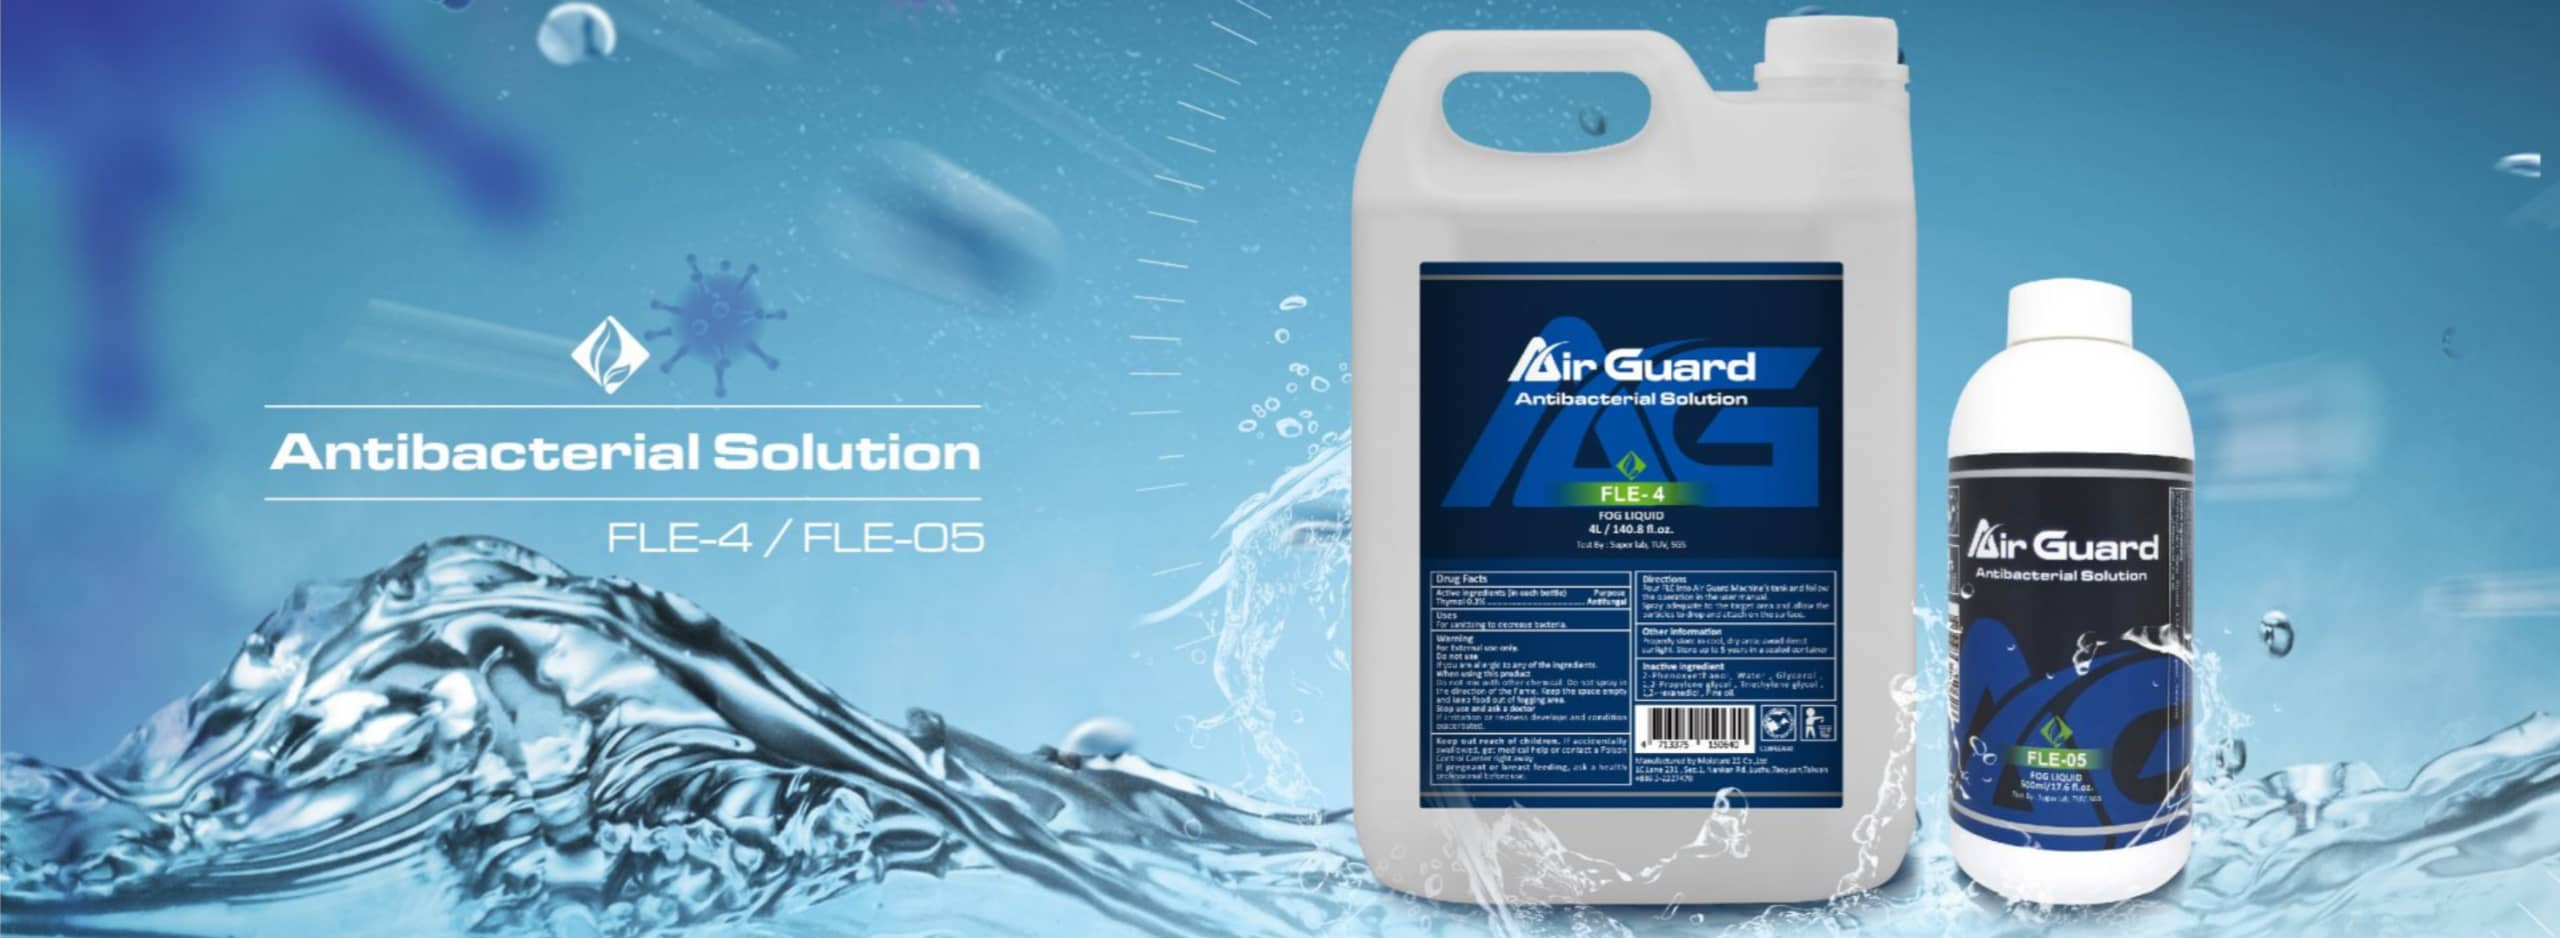 Air Guard - Easy Go, Easy Use! Portable design means you can use the disinfector anywhere - in your home, office, boat, car, anywhere! Eficiently eliminate the bad odor and bacteria, mold, fungi in short time.